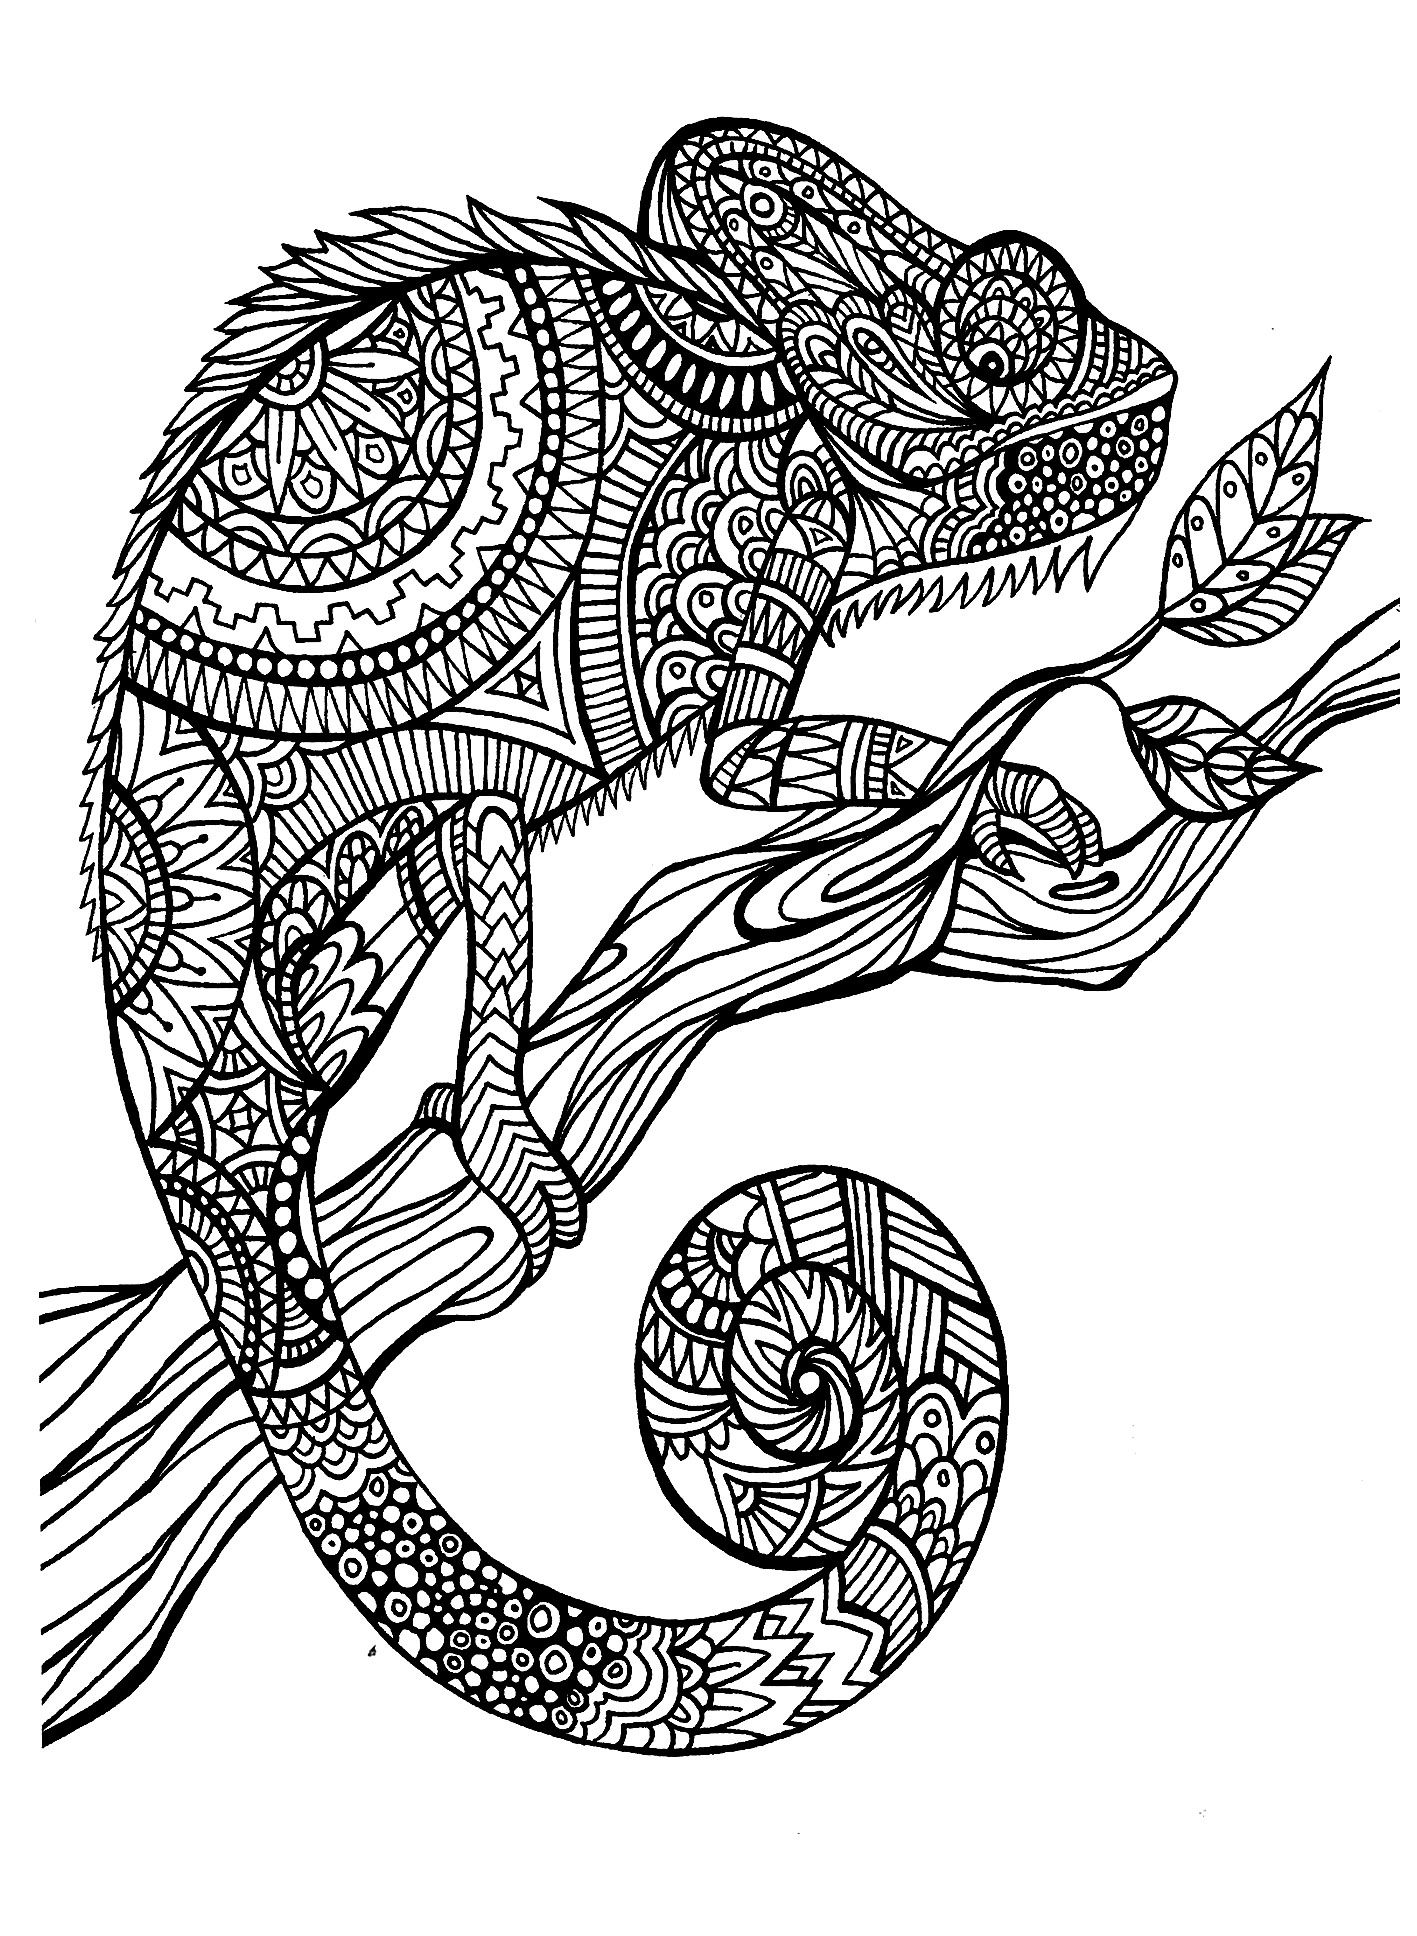 Free printable zentangle coloring pages for adults - Free Coloring Page Coloring Adult Cameleon Patterns A Magnificien Cameleon To Color Drawn With Zentangle Patterns Mindful Coloring Adult Pinterest